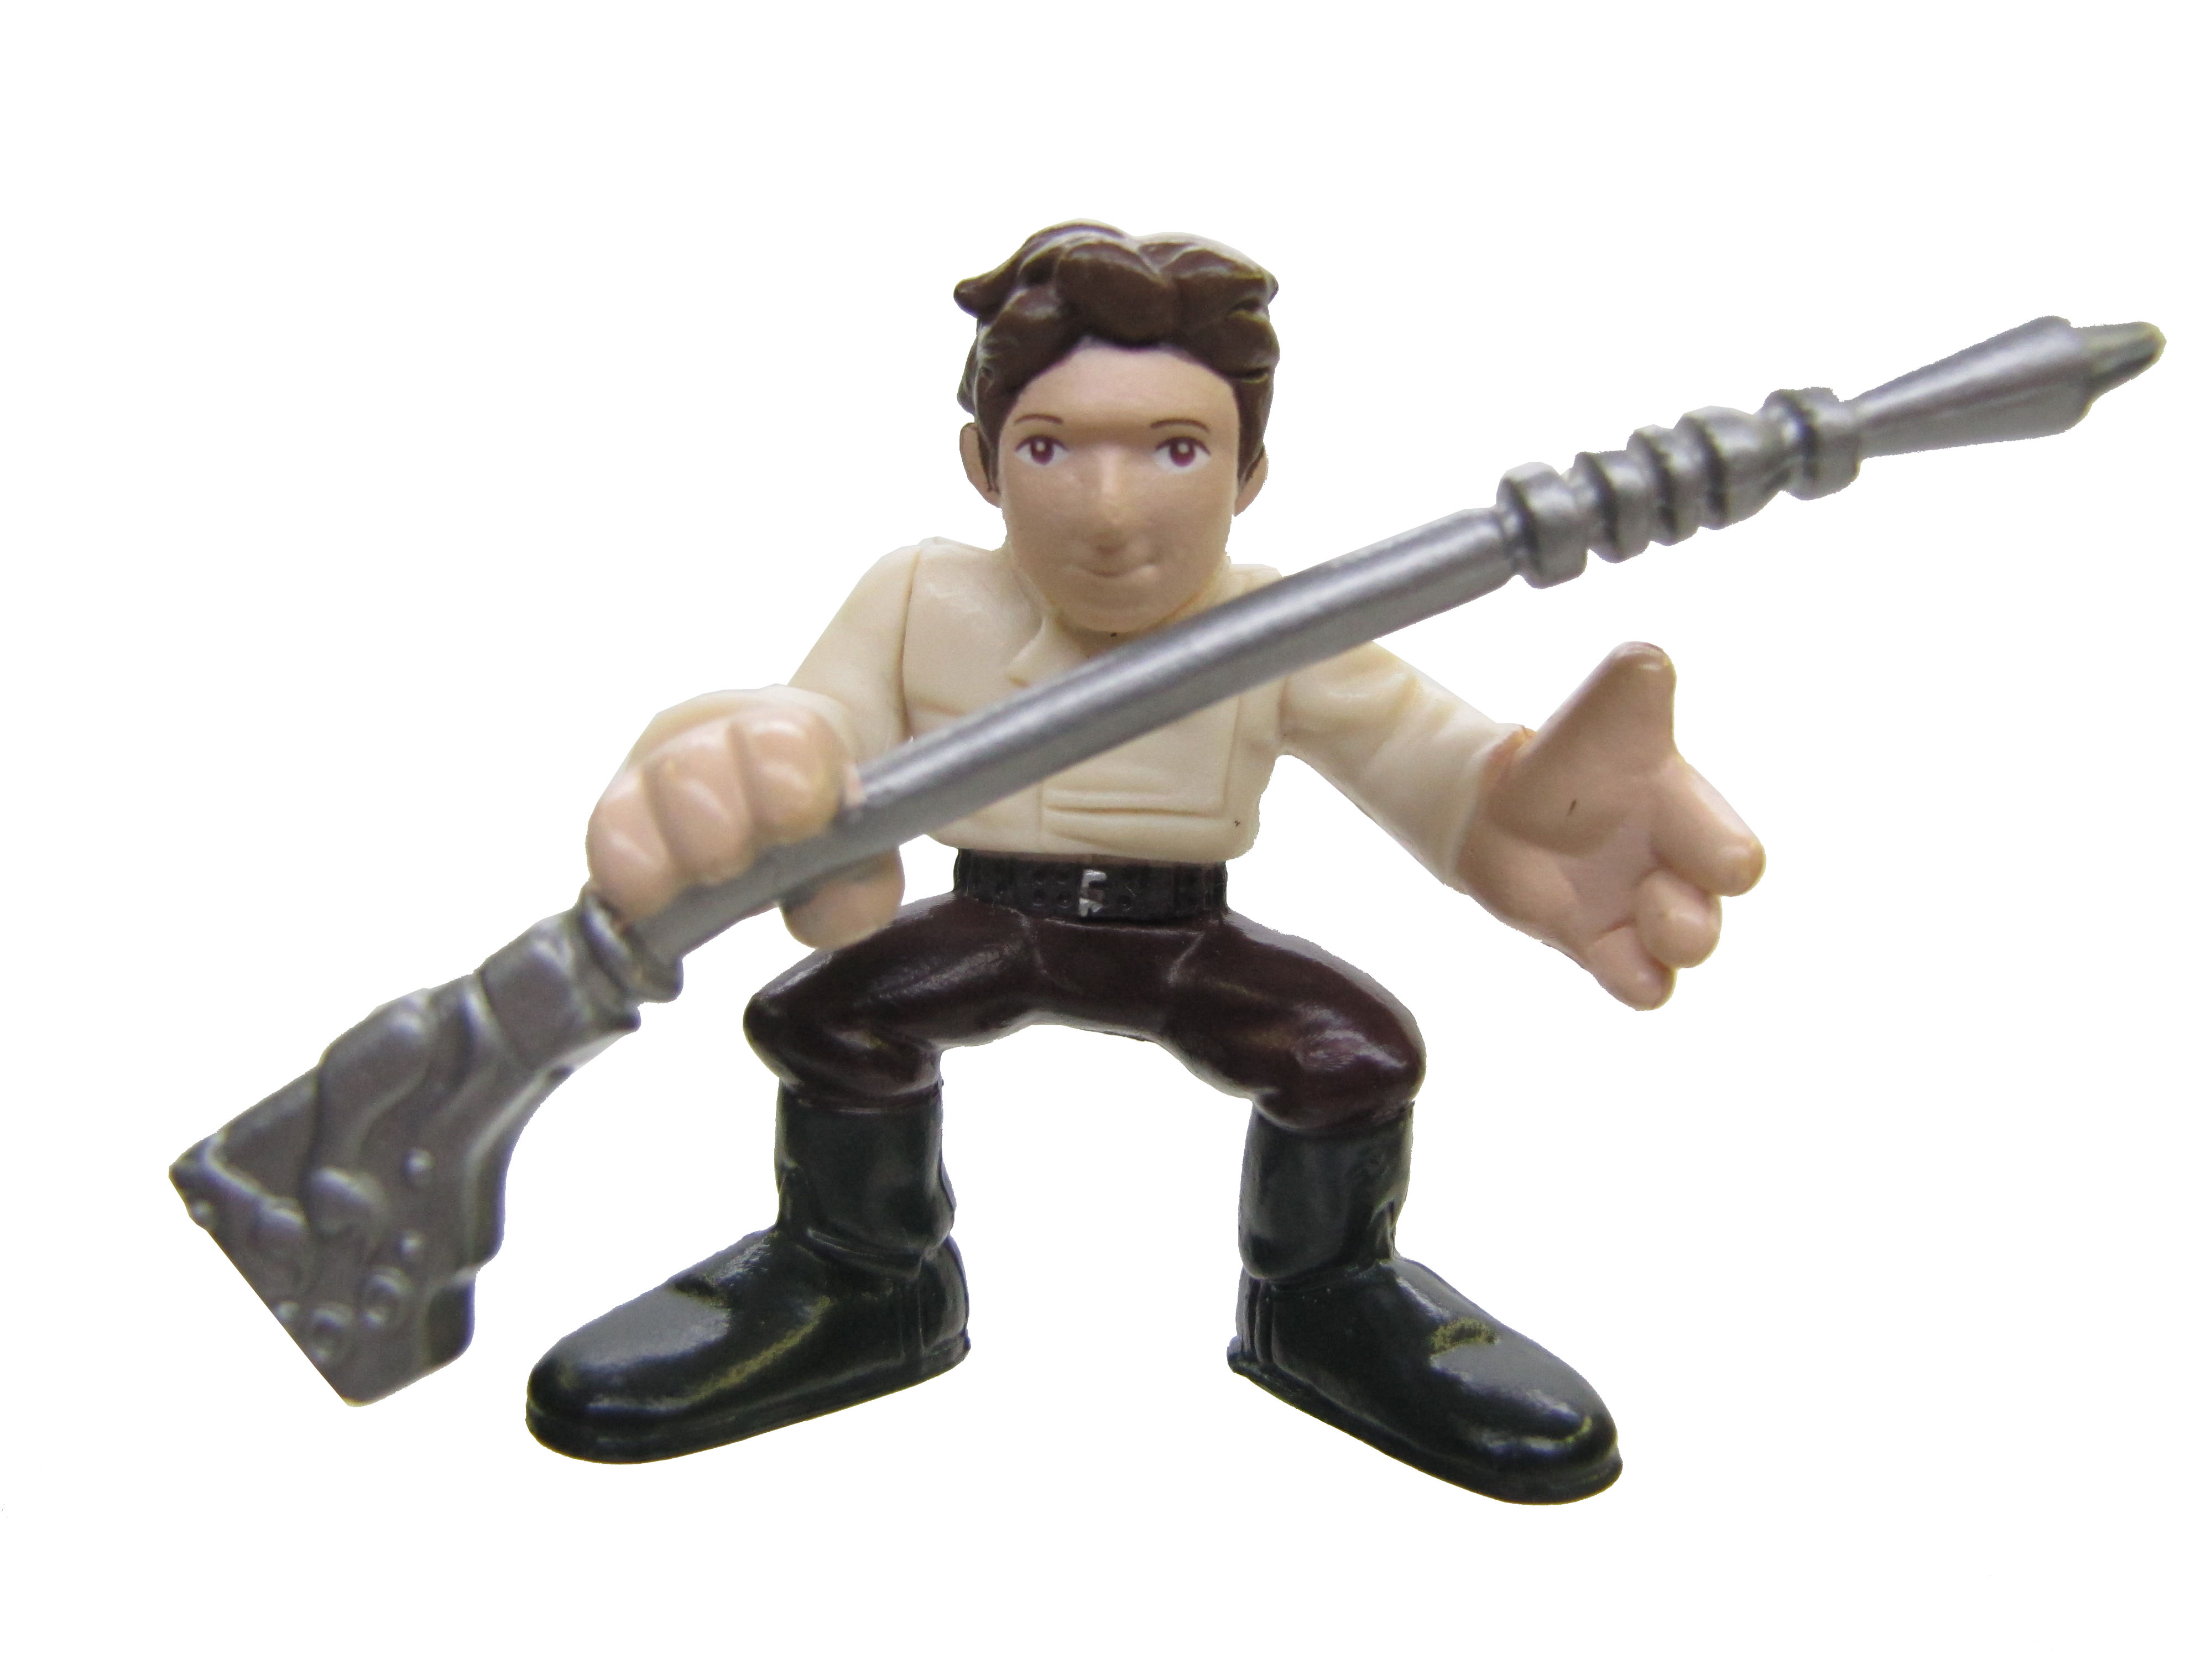 Star Wars Galactic Heroes JABBA'S SKIFF PIT OF CARKOON HAN SOLO